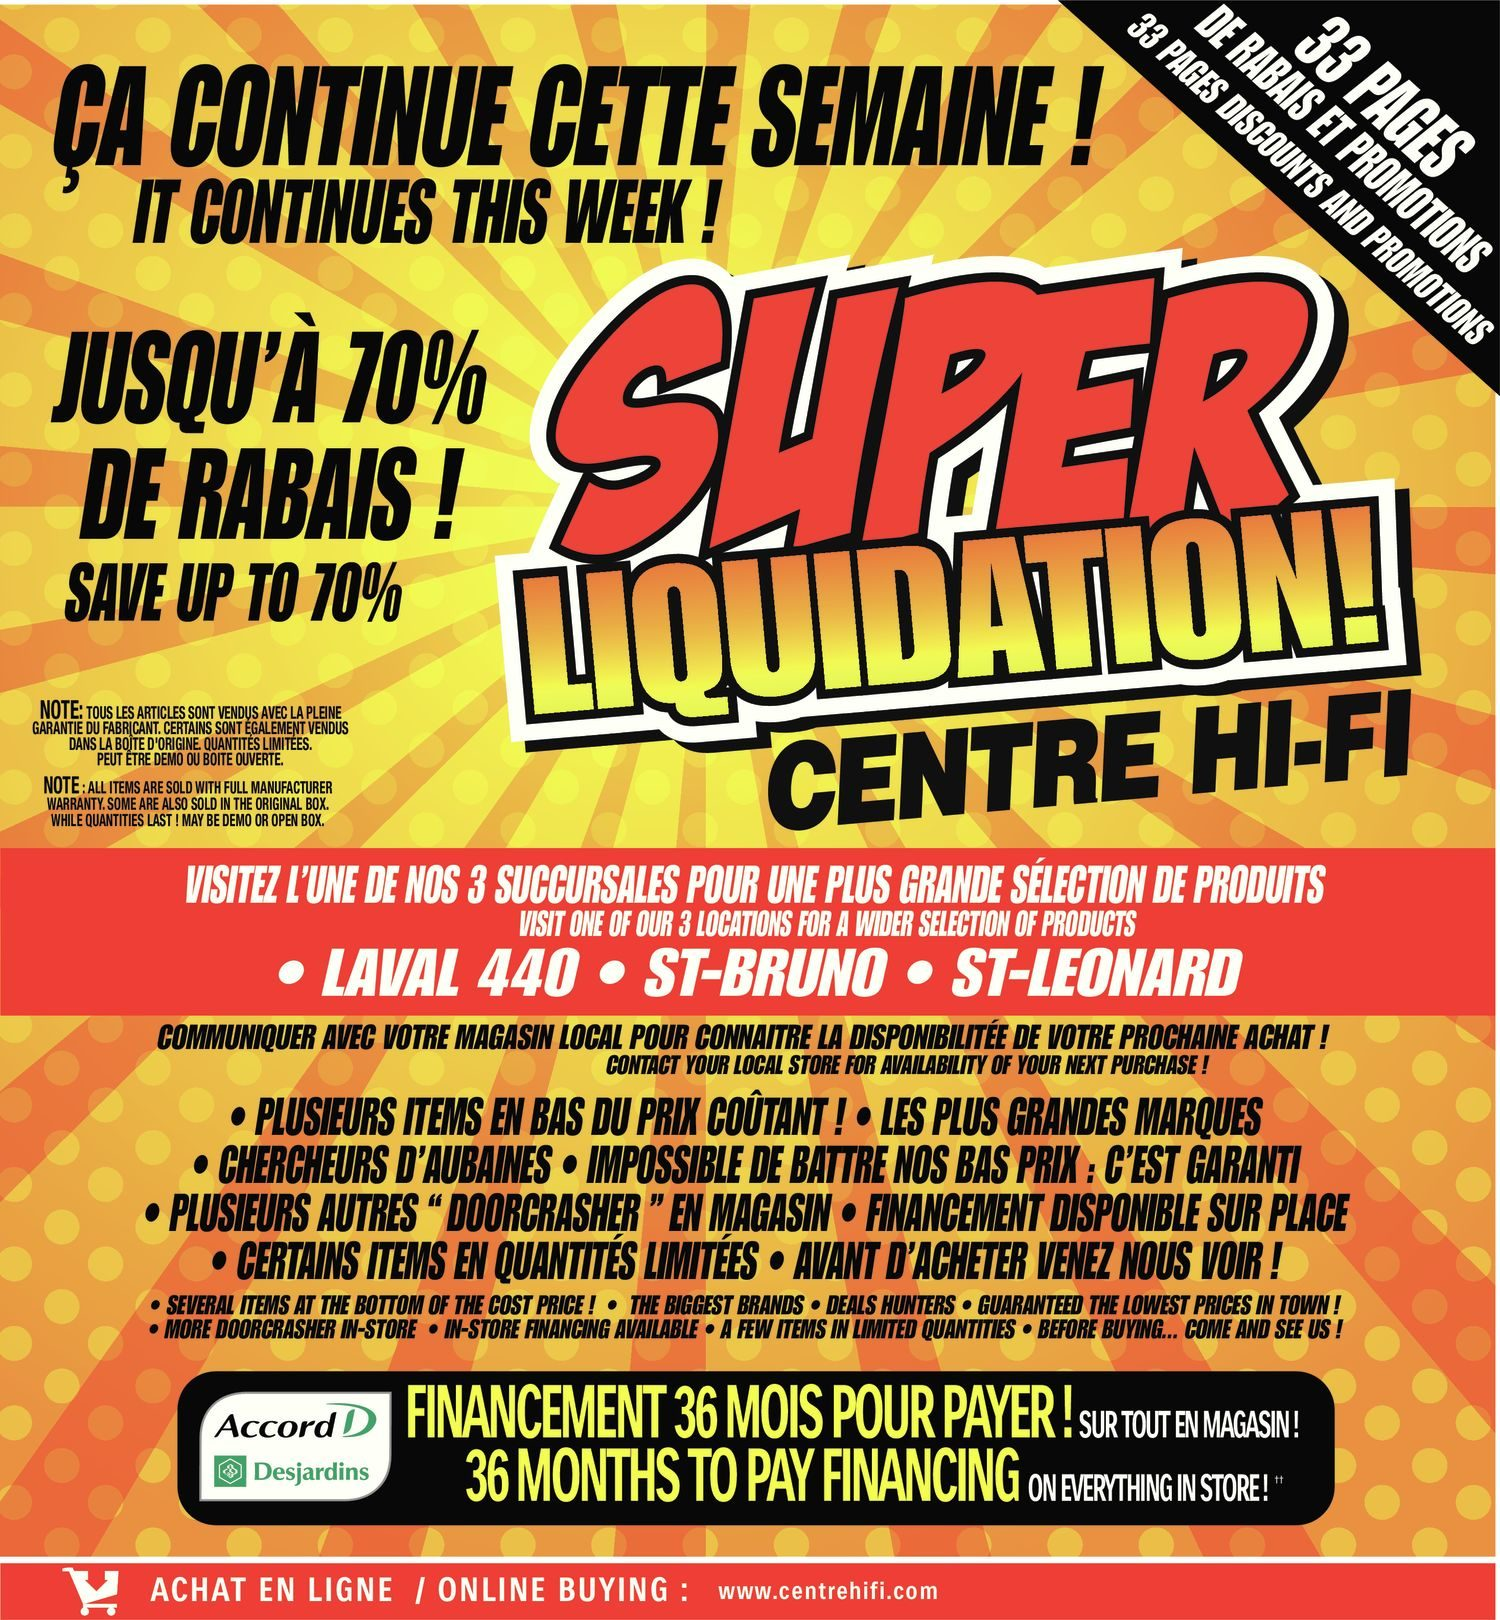 Store A Rabais Centre Hifi Weekly Flyer Weekly Super Liquidation Feb 8